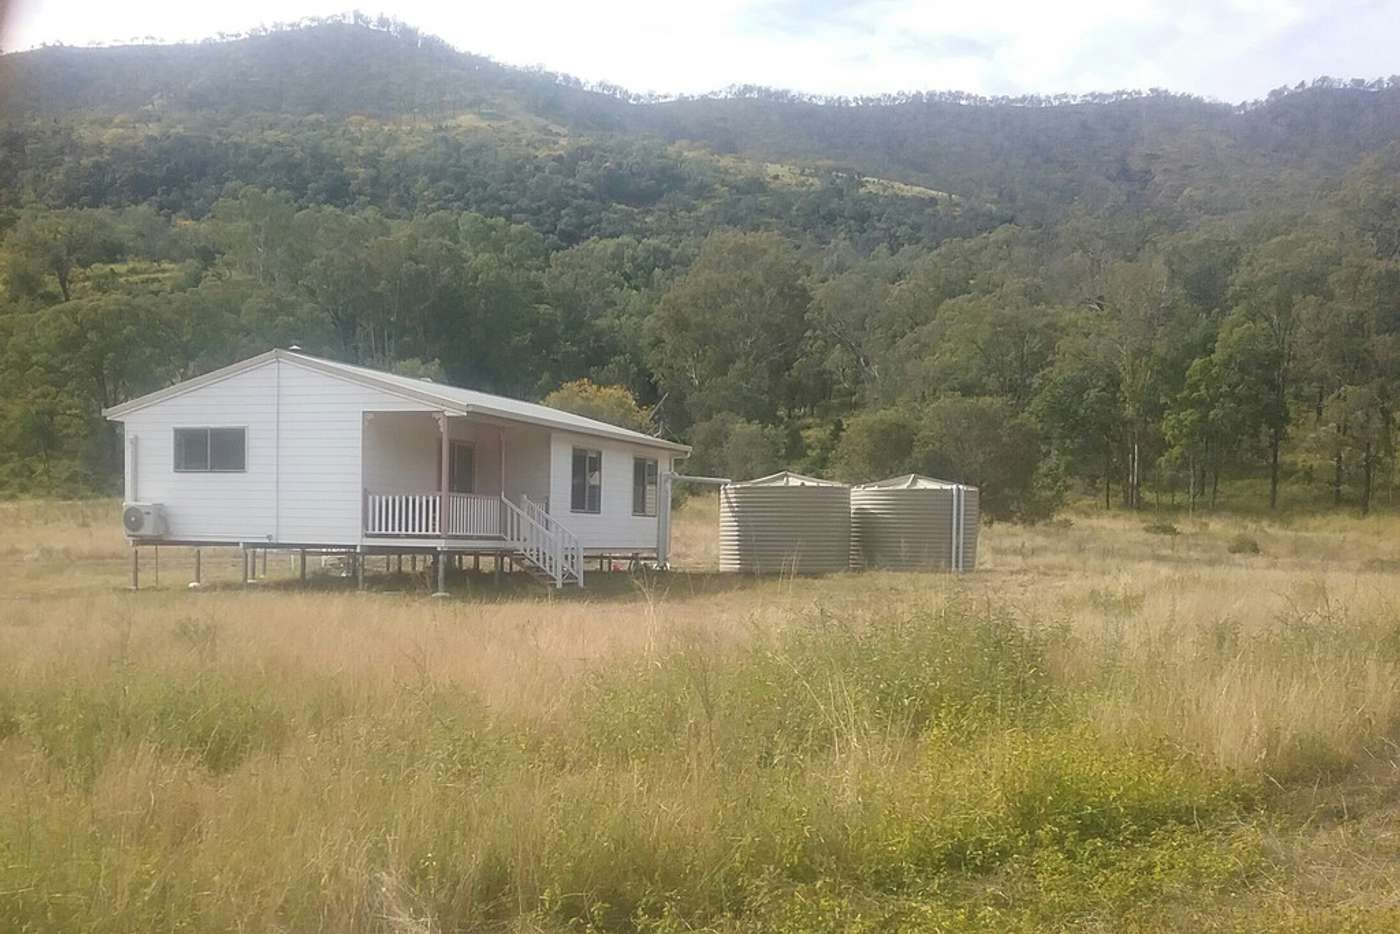 Main view of Homely acreageSemiRural listing, 691 Lefthand Branch Rd, Lefthand Branch QLD 4343